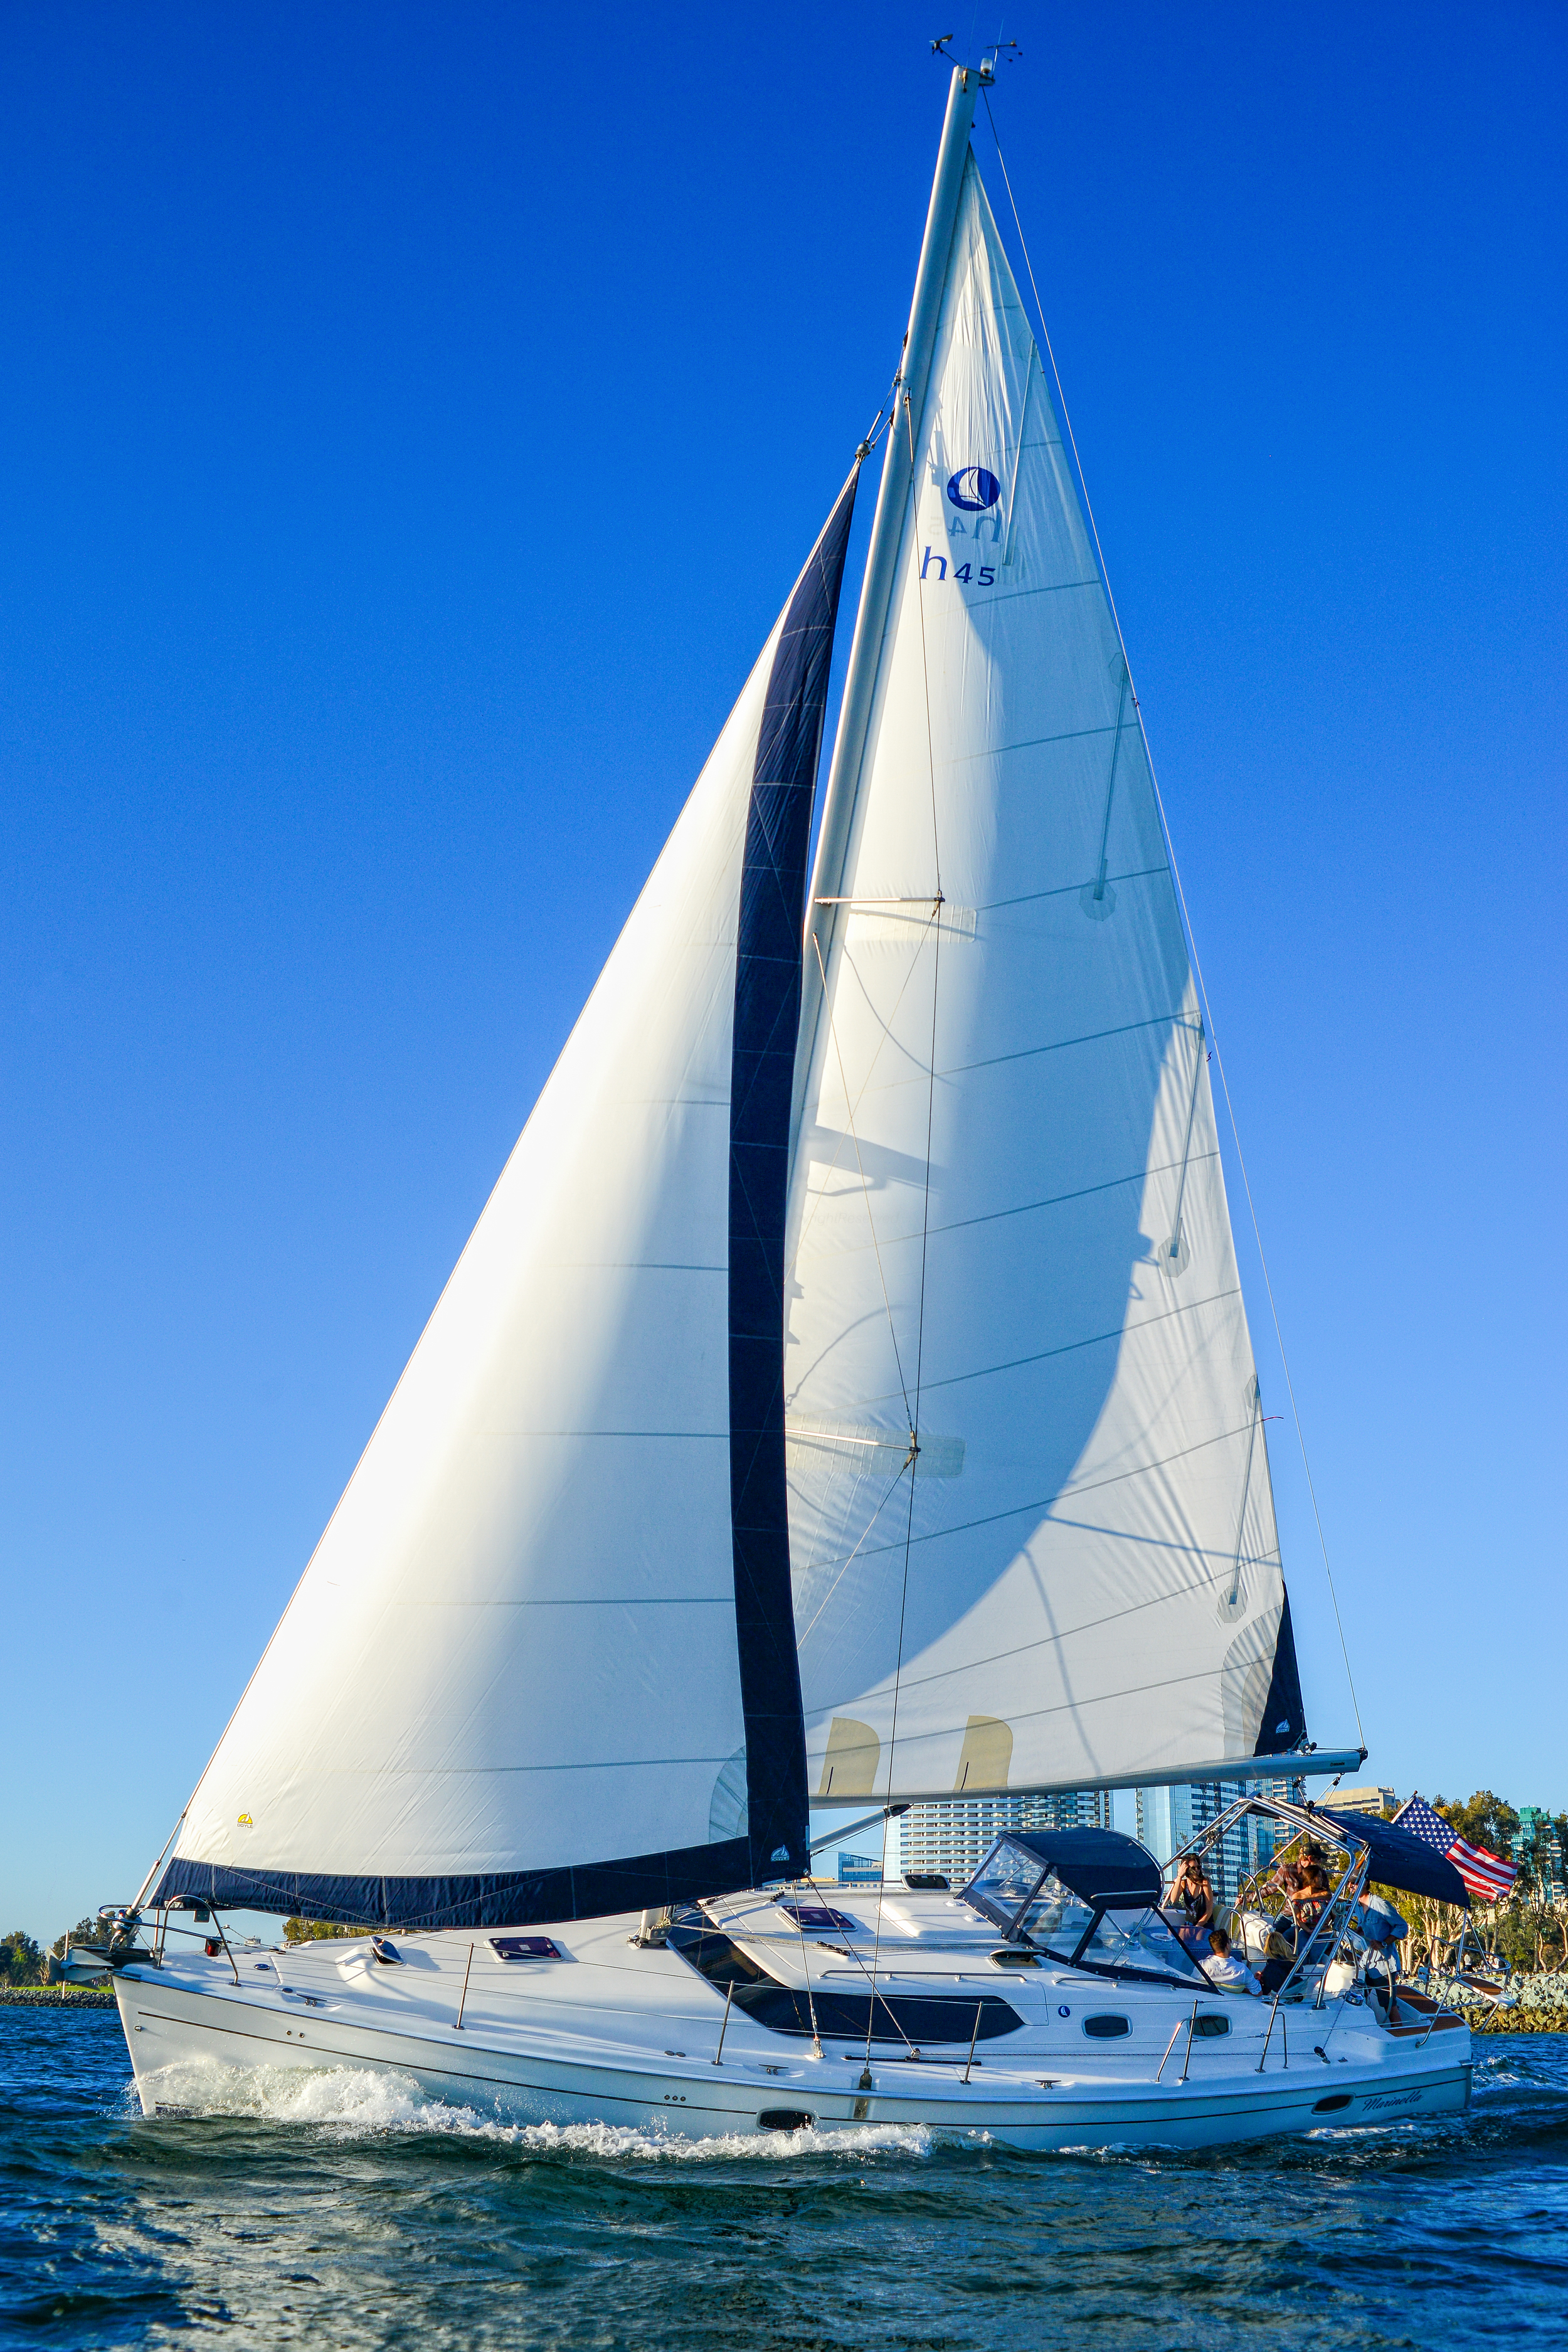 Private San Diego Sailing Charters